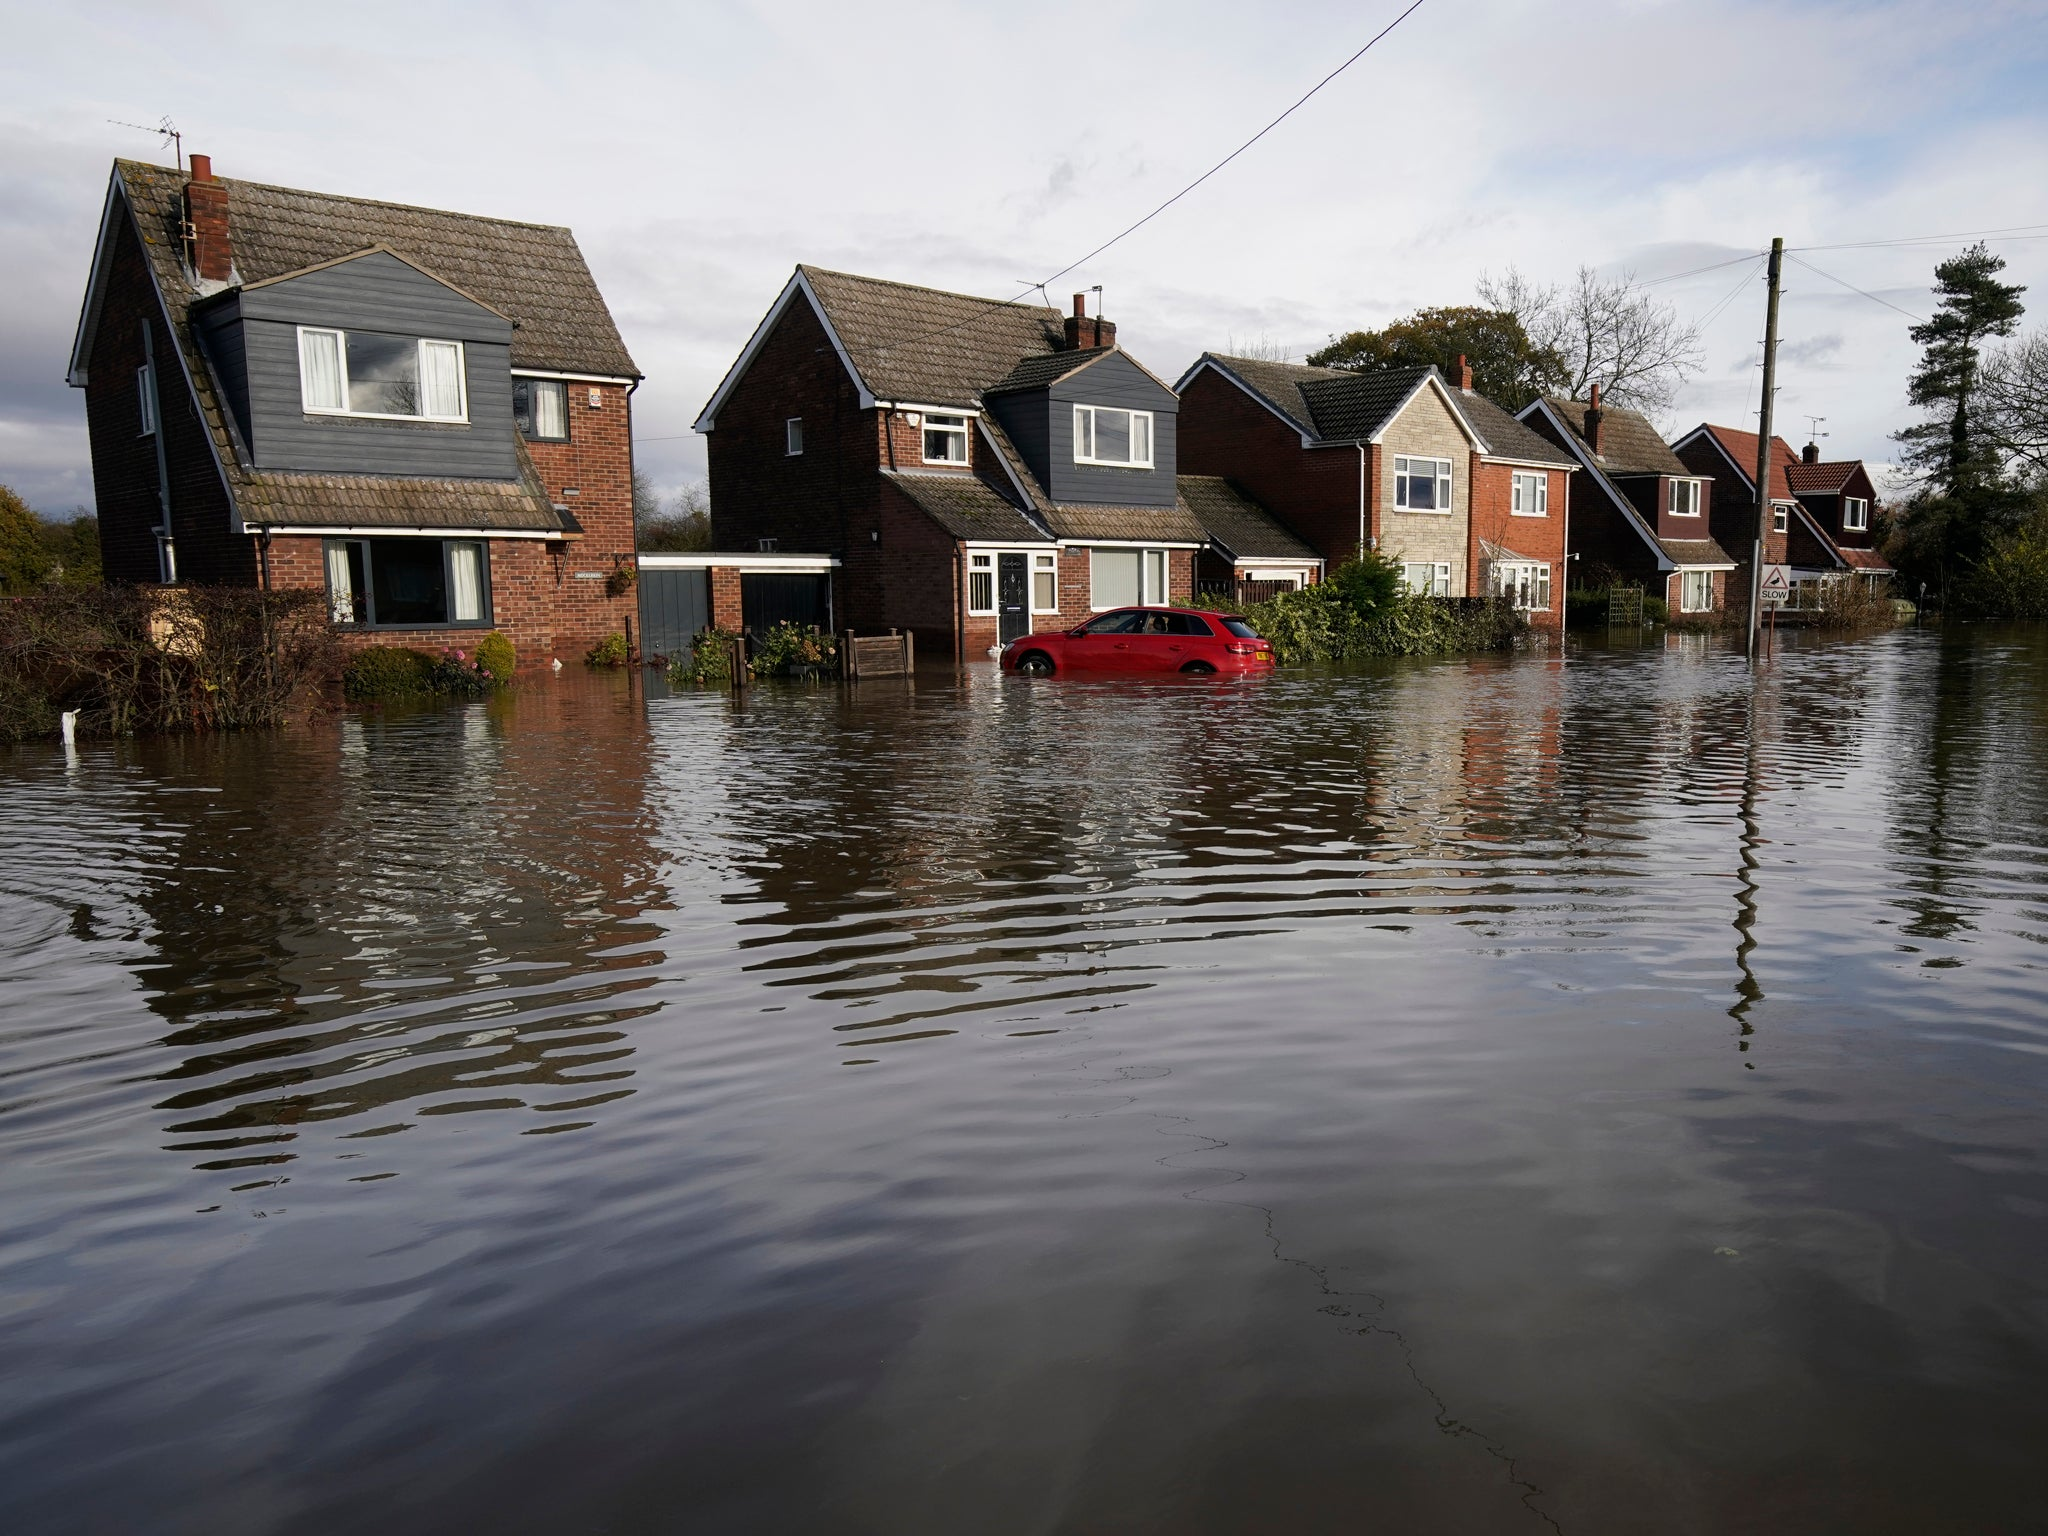 UK weather: Boris Johnson to chair emergency Cobra meeting about floods as Britons warned about 'danger to life' over heavy rain